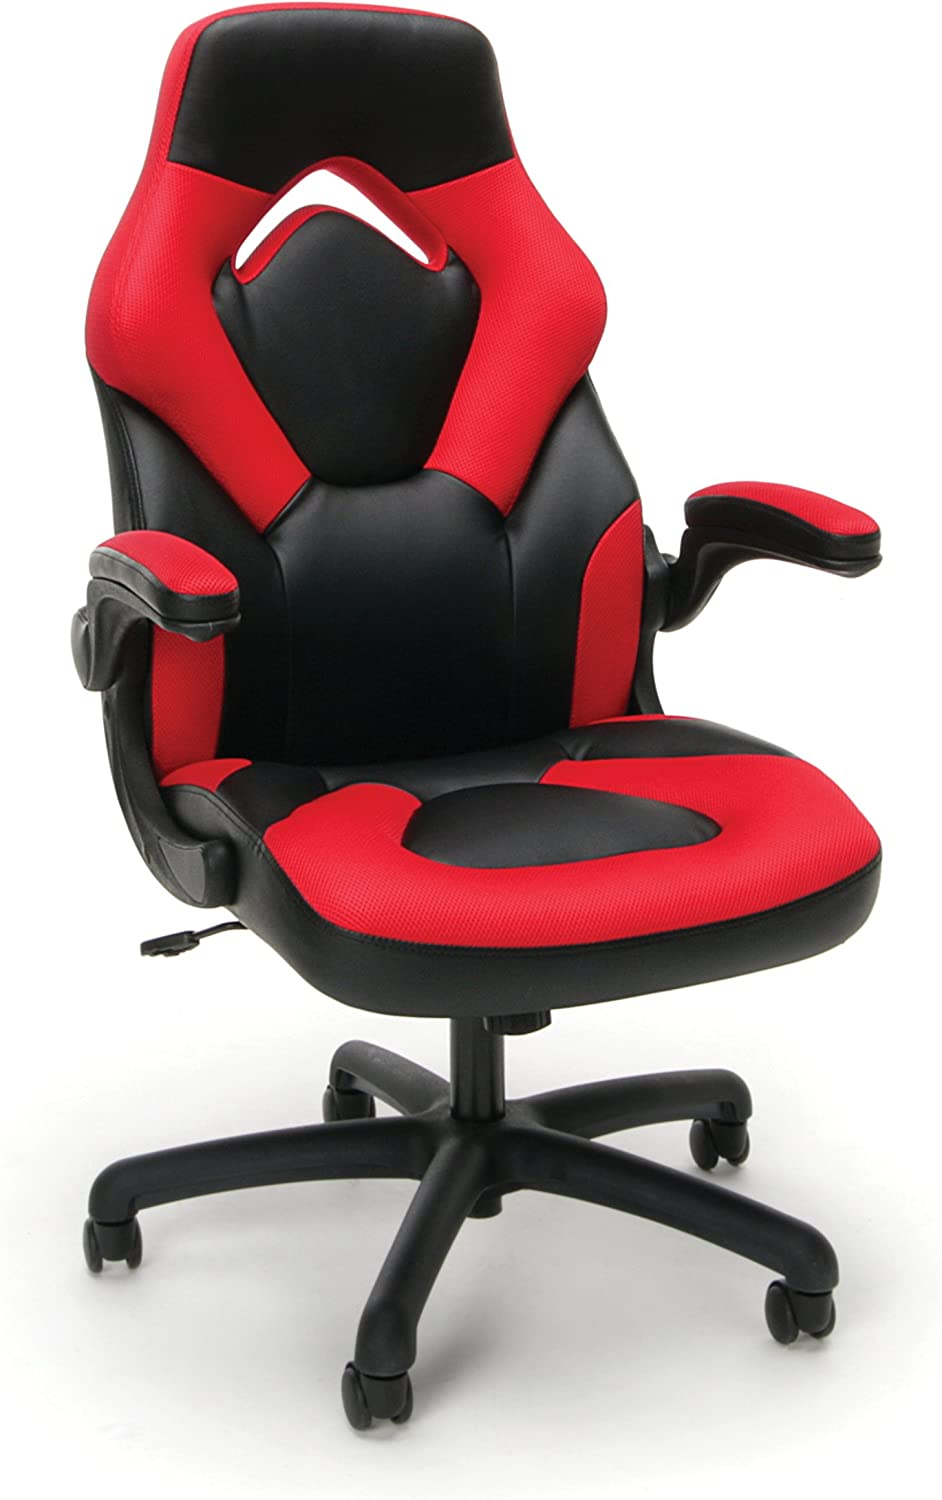 Essentials Racing Style Leather Gaming Chair - Ergonomic Swivel Computer, Office or Gaming Chair, Red (ESS-3085-RED)